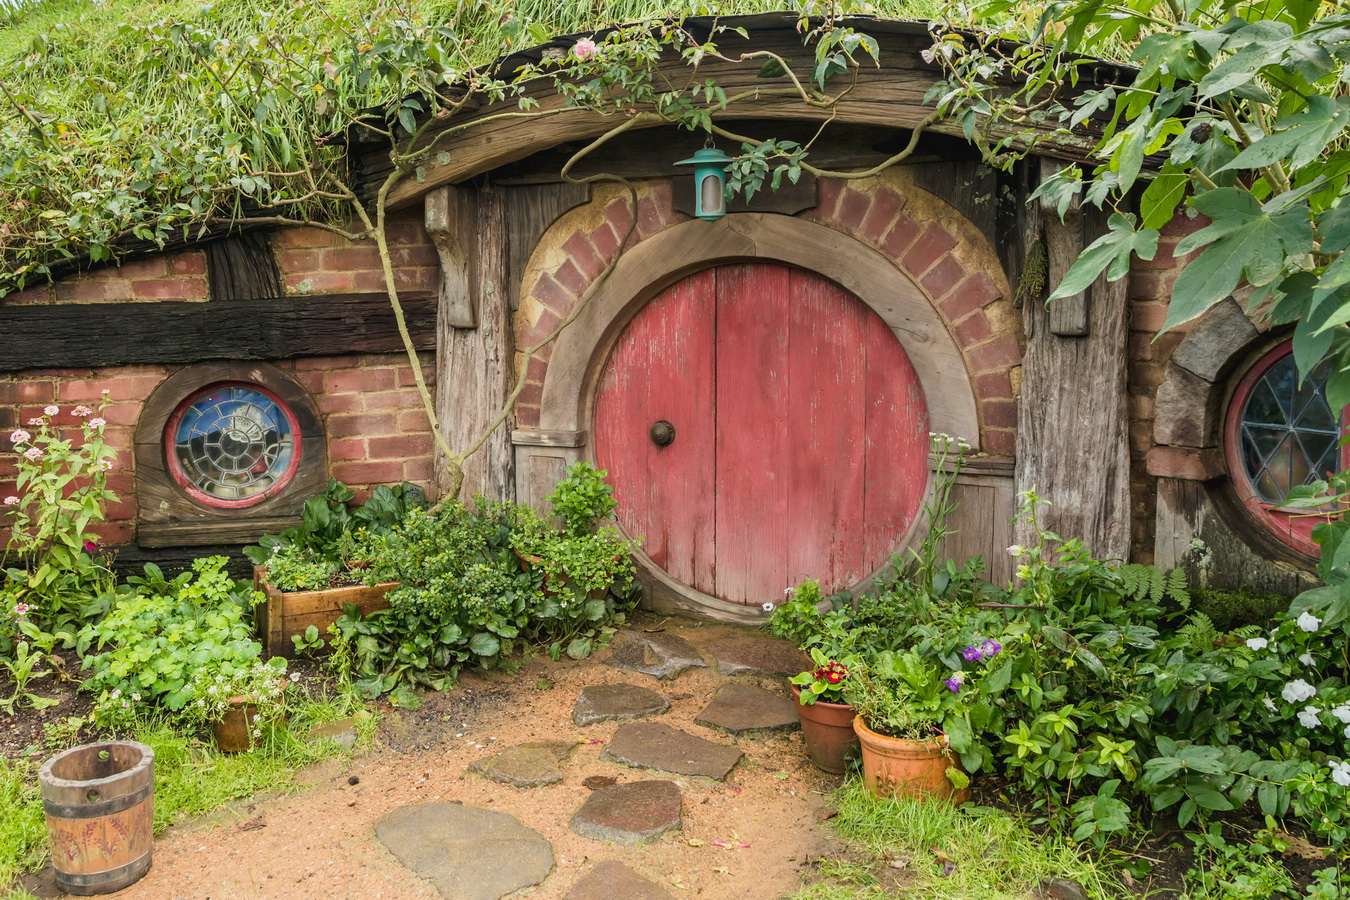 house,red door,The Hobbiton, The Shire,Хоббитшир, Удел, Хоббитания, Заселье, Край,Matamata, North Island ,New Zealand